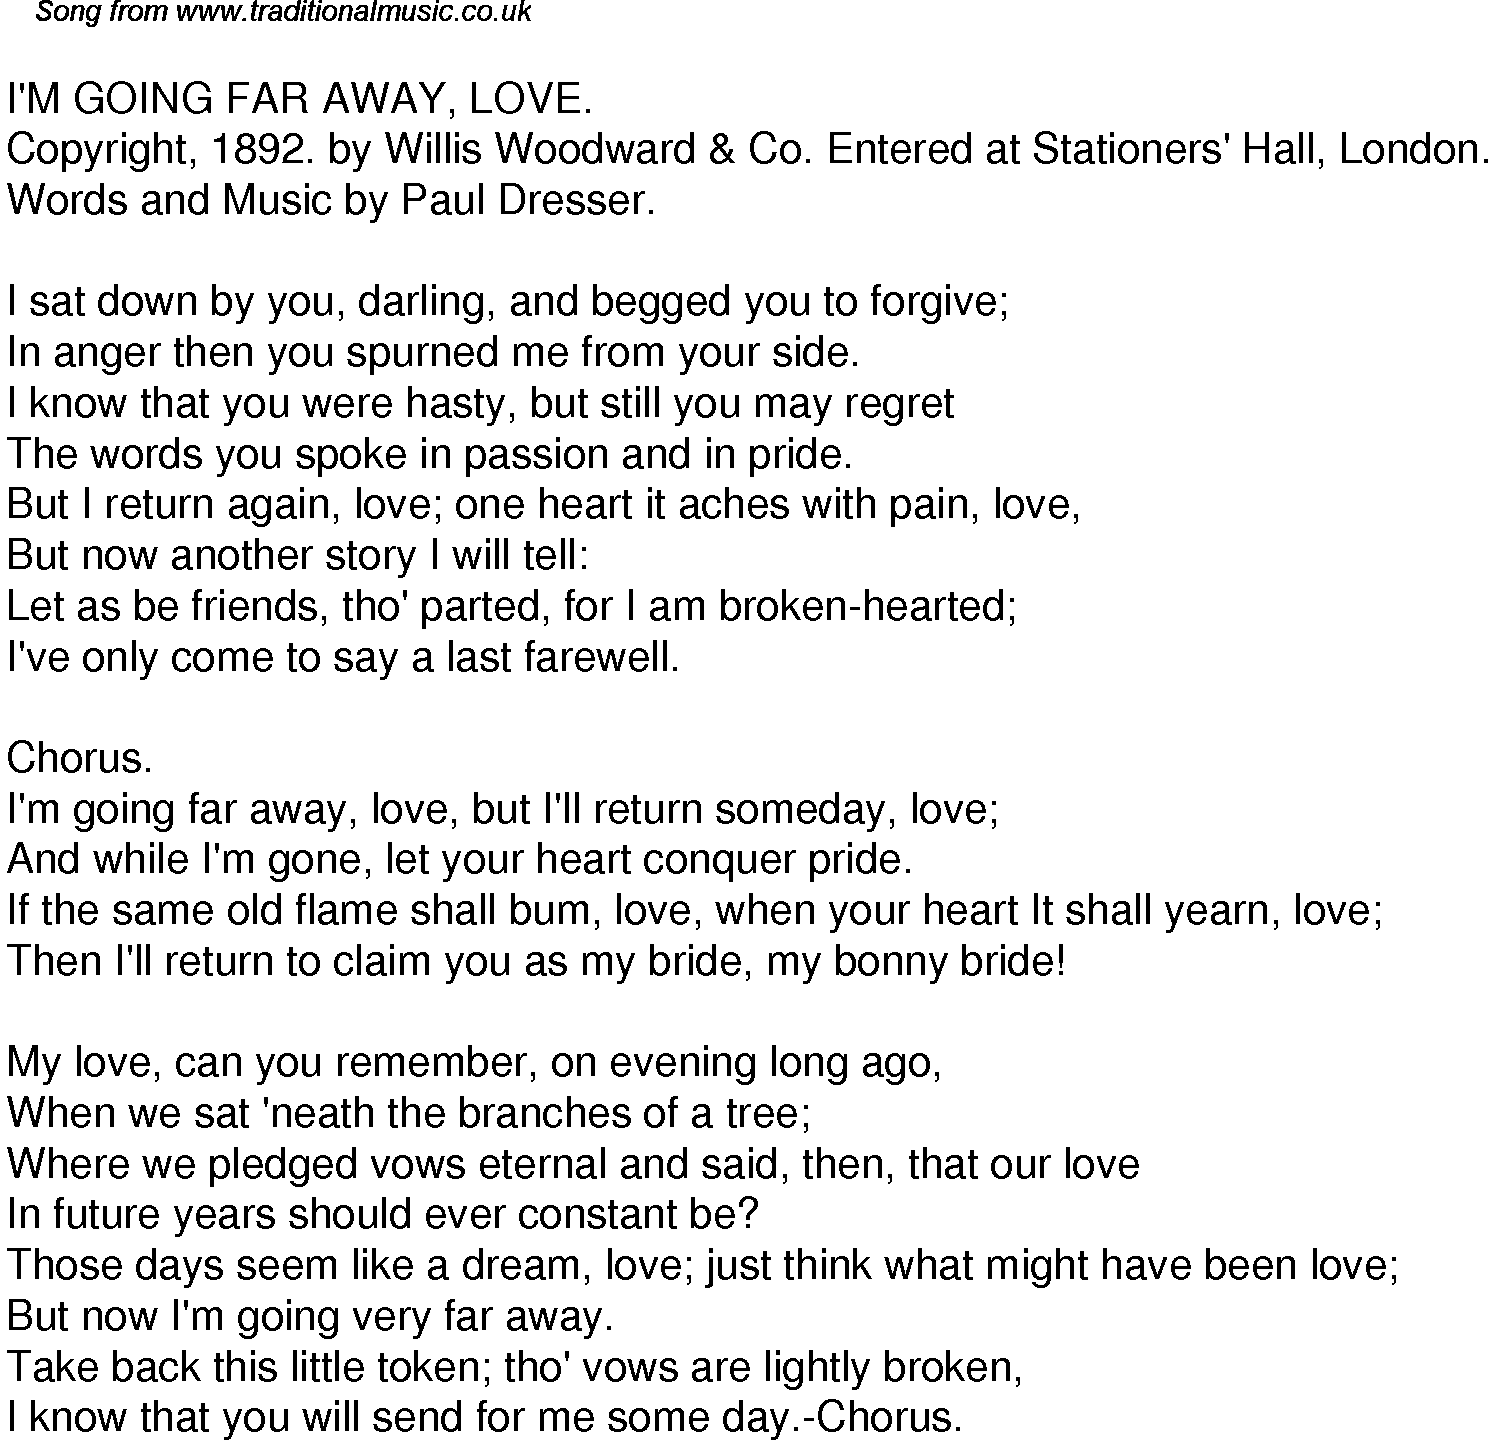 Old Time Song Lyrics For 37 I'm Going Far Away Love